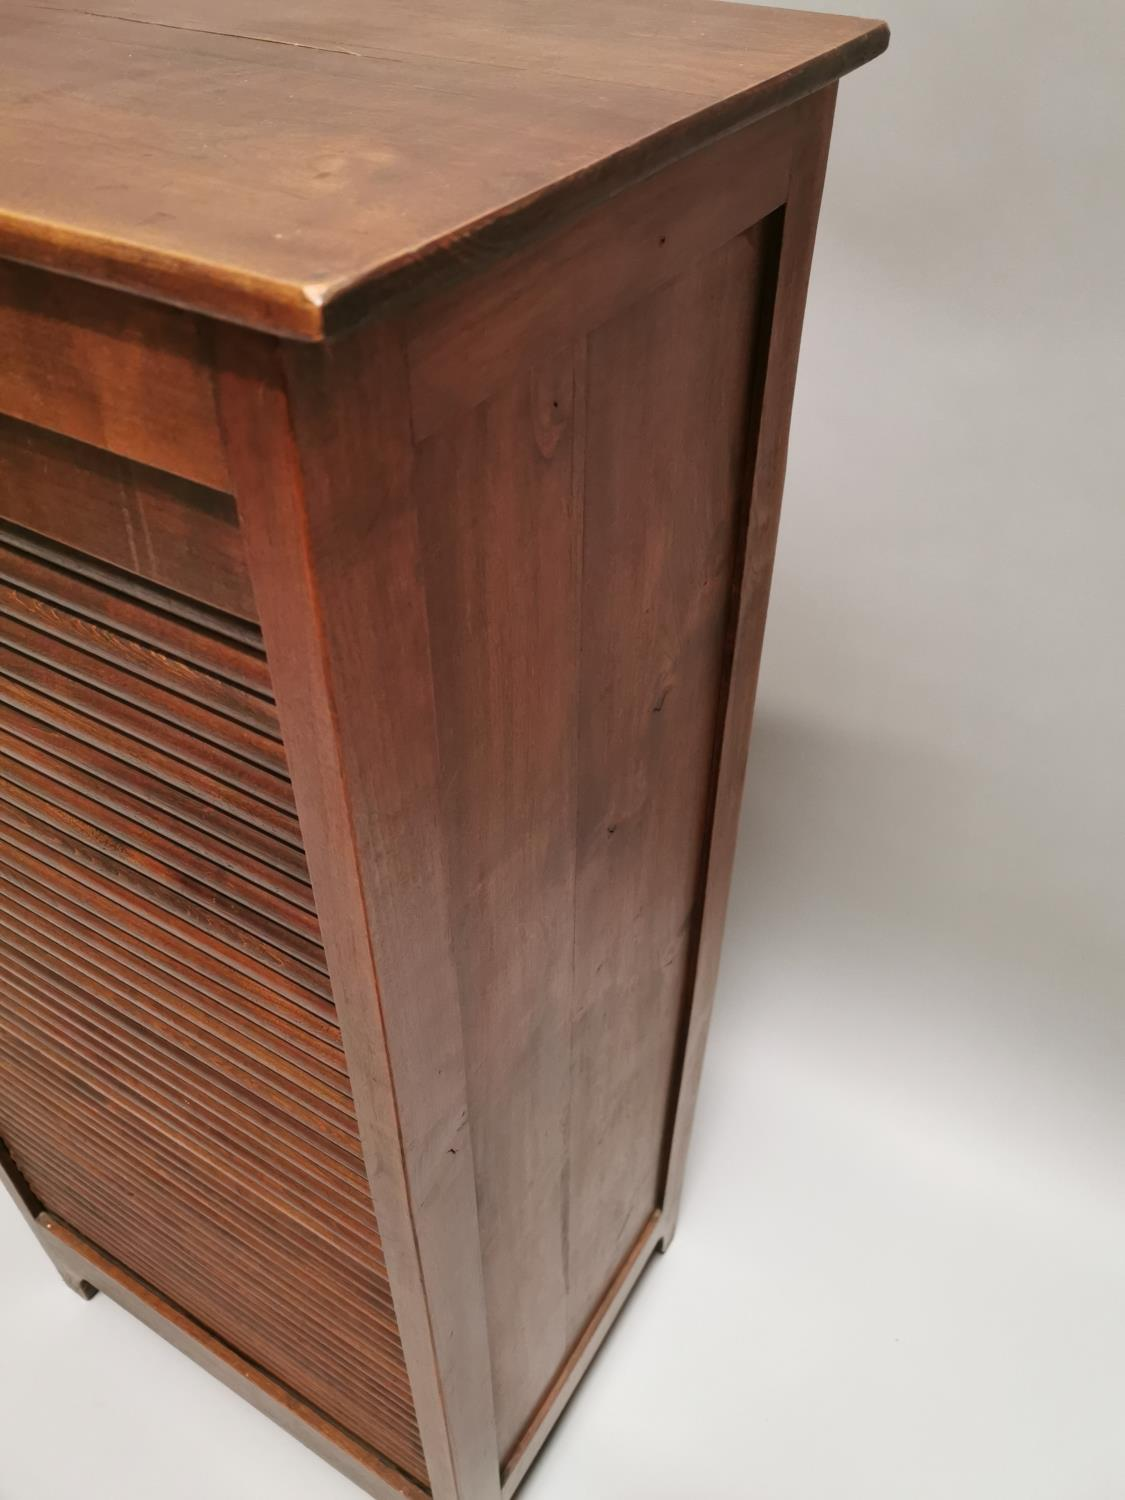 Early 20th. C. oak filing cabinet - Image 2 of 7